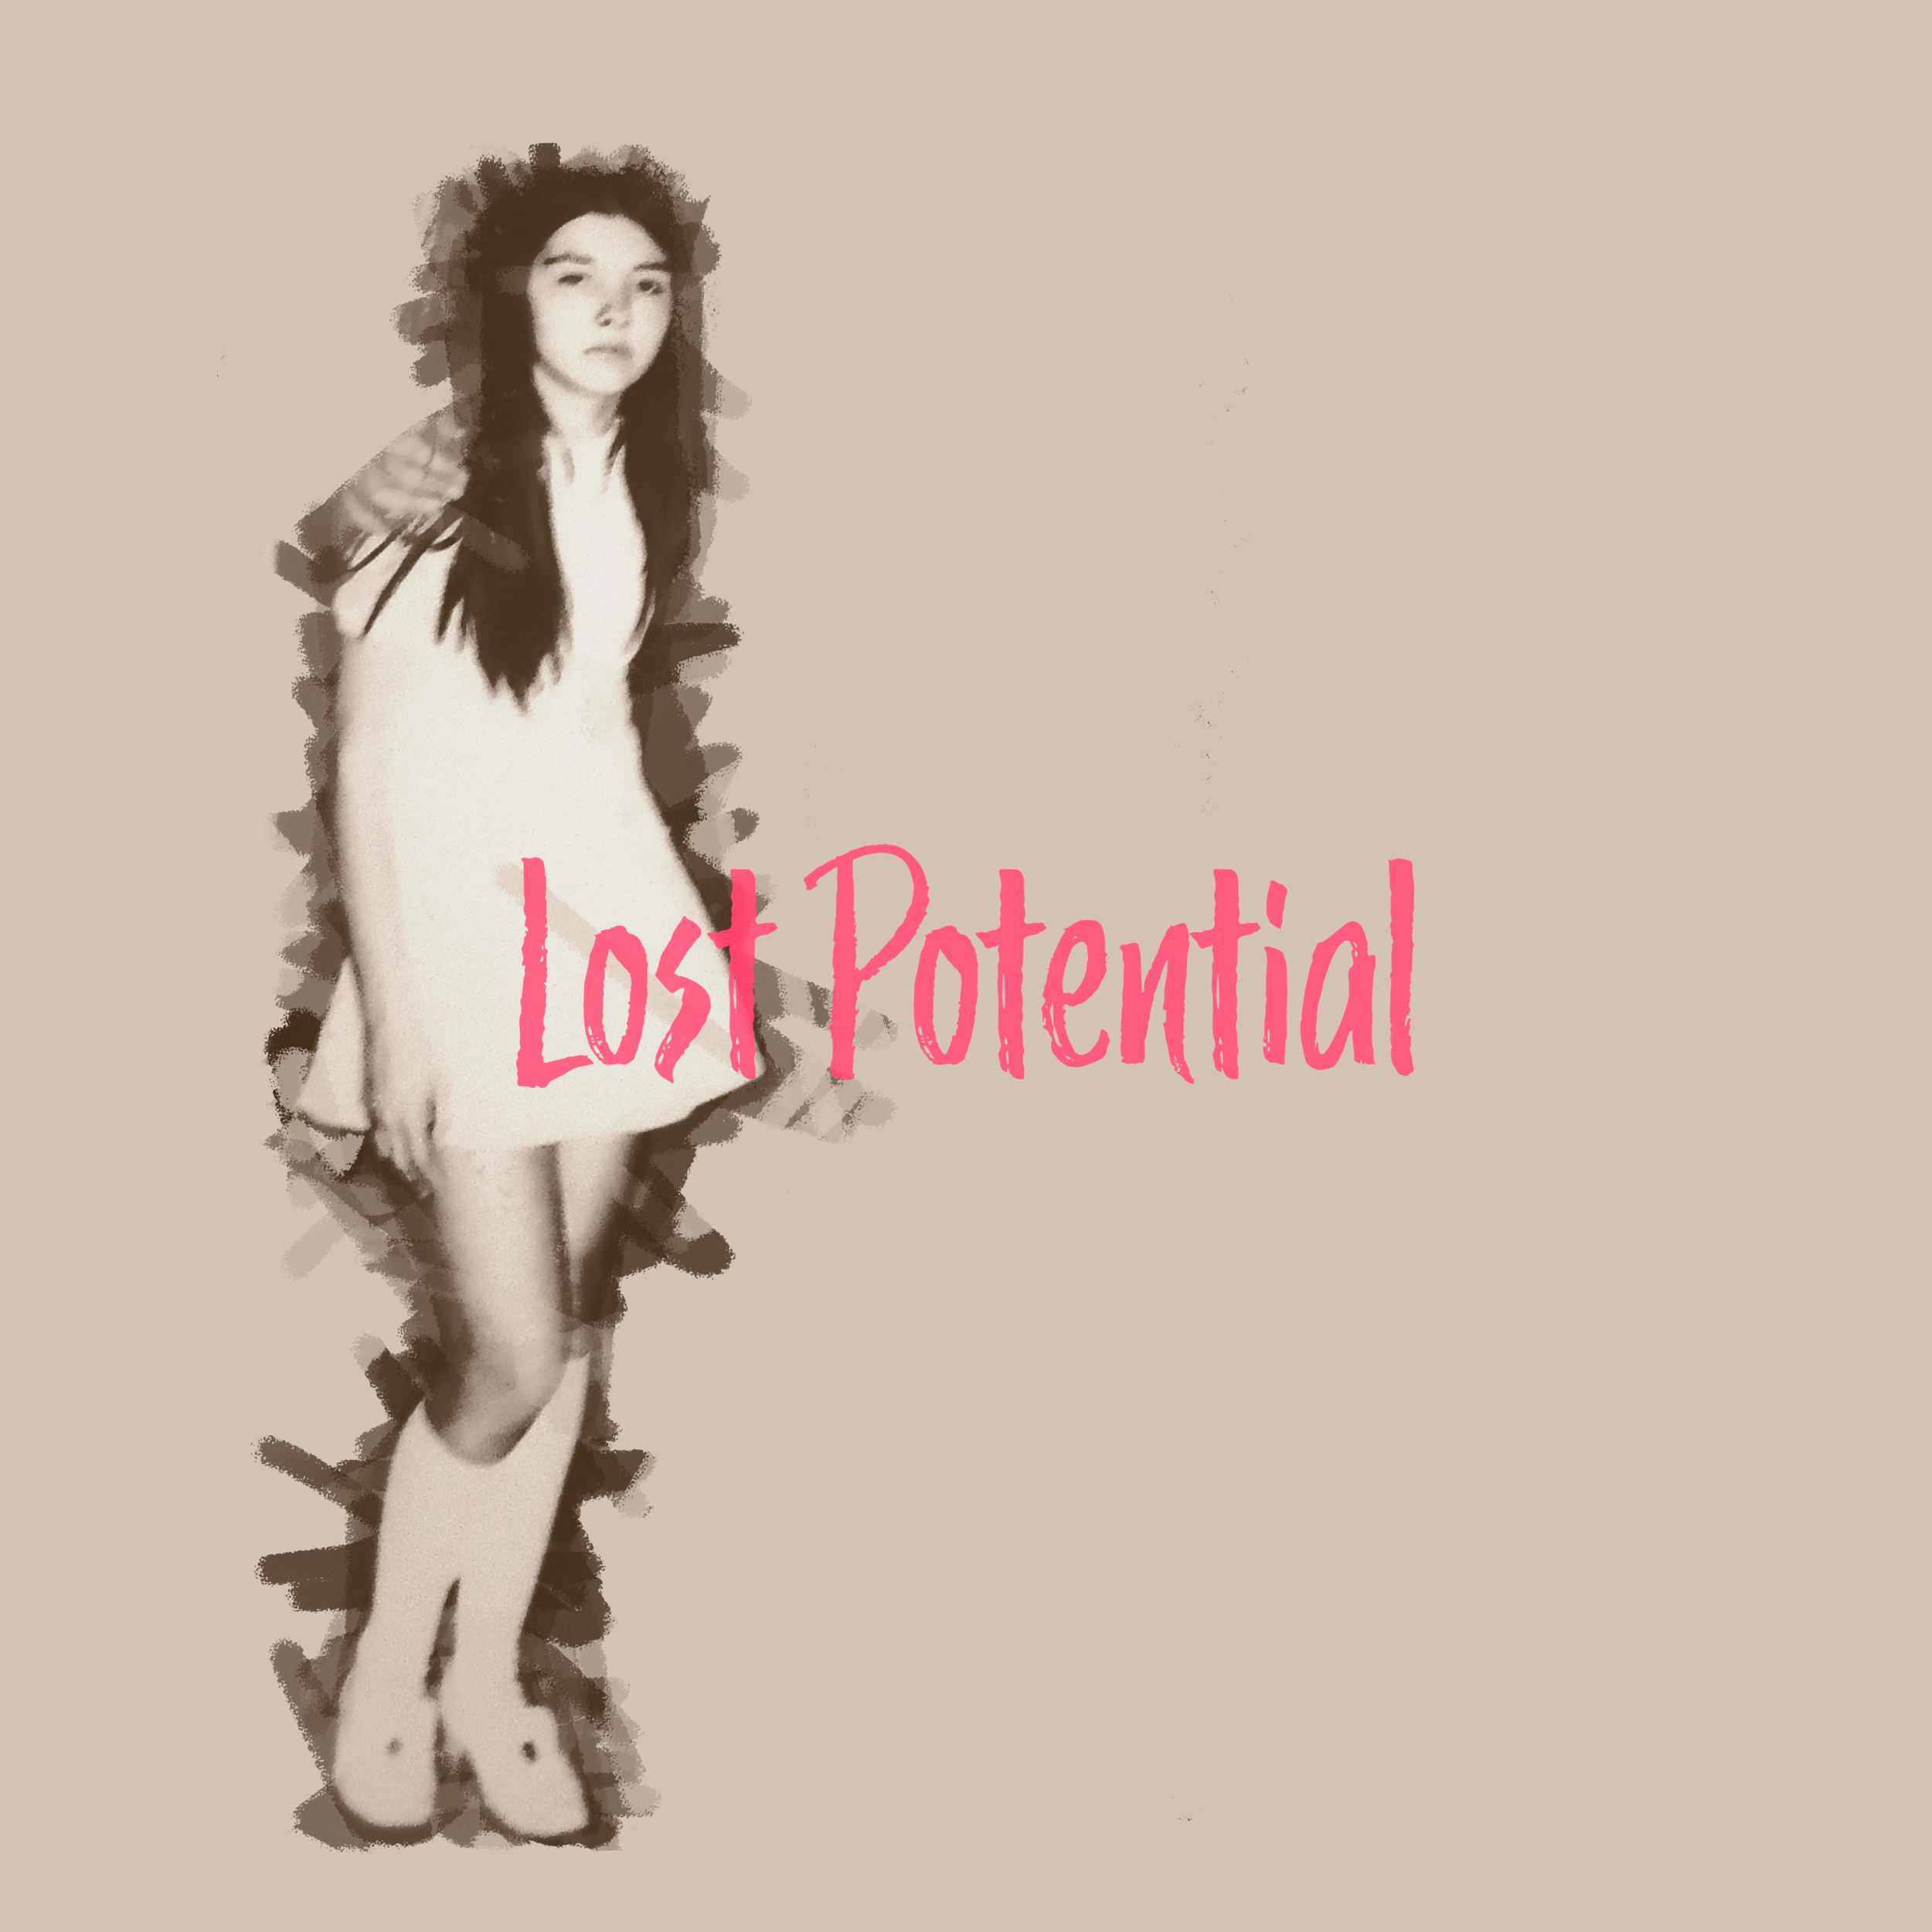 Lost Potential